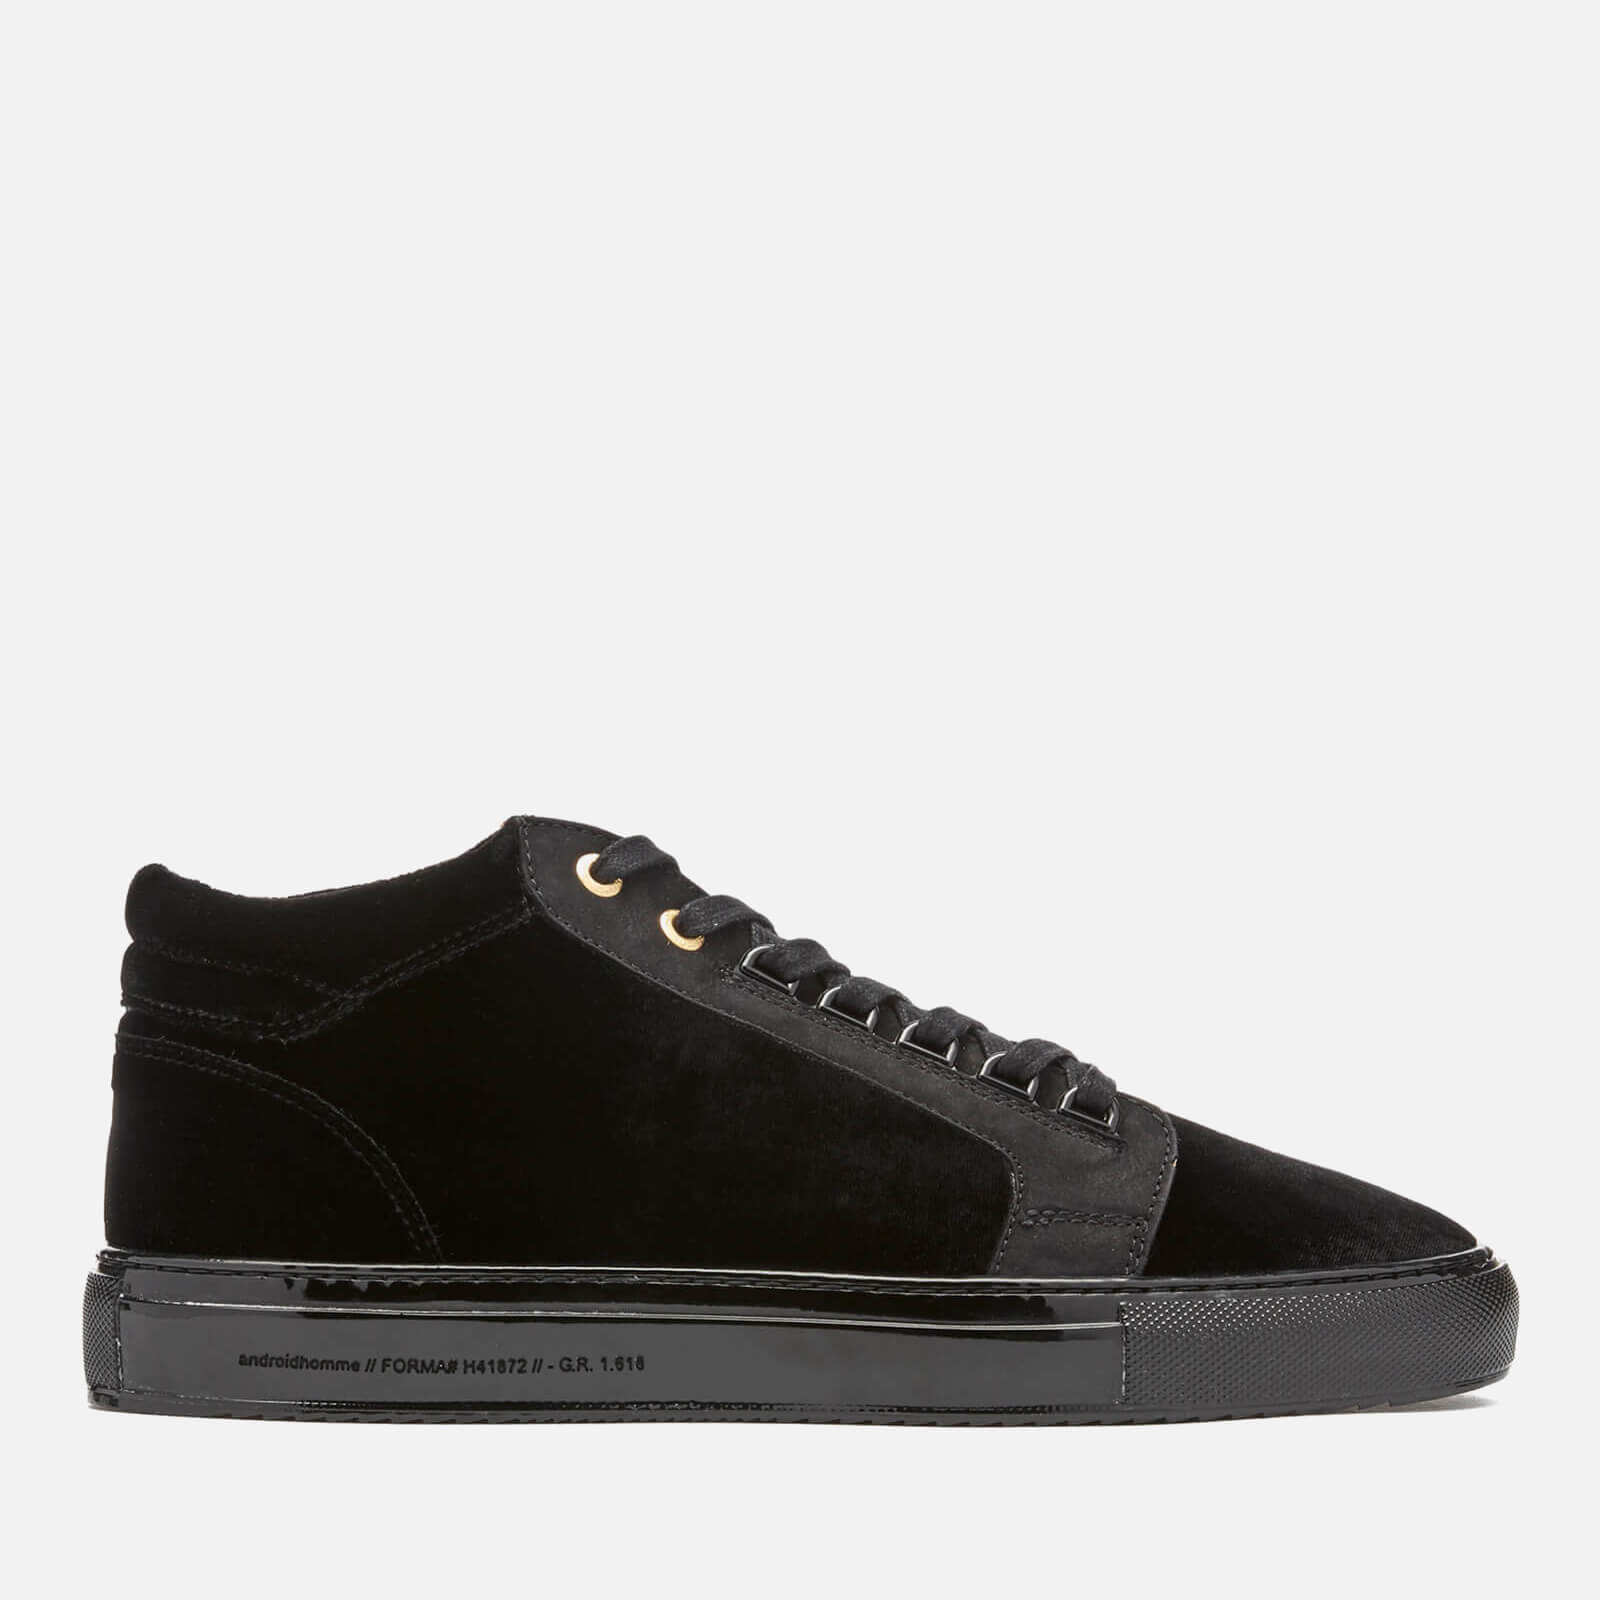 99b45f8ba80 Android Homme Men s Propulsion Mid Velvet Trainers - Black - Free UK  Delivery over £50